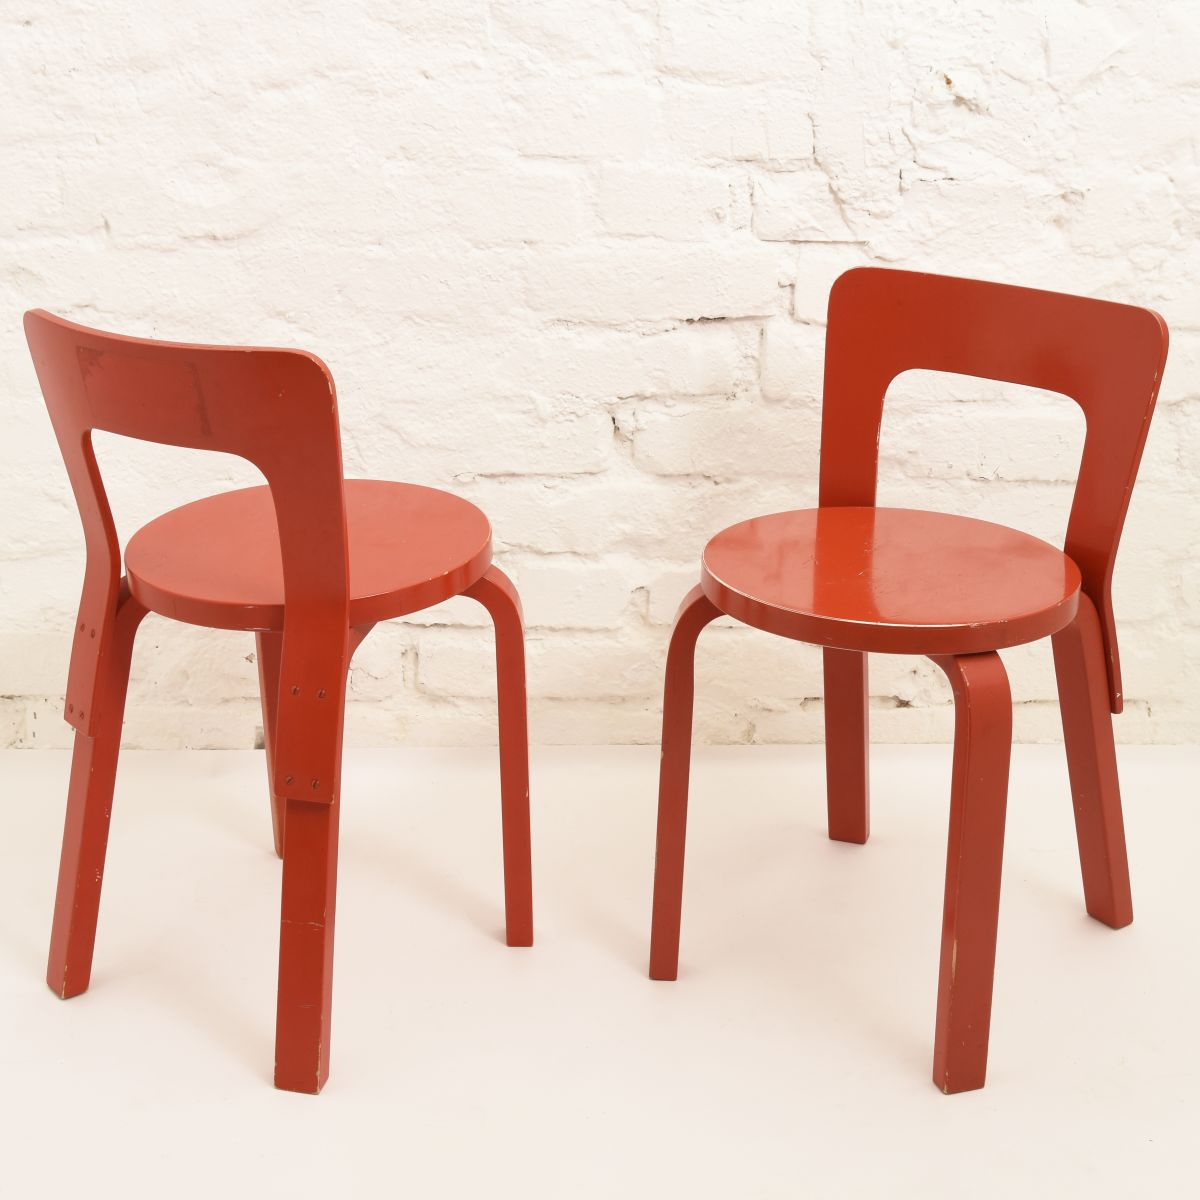 Aalto-Alvar-Chair65-Red-Painted